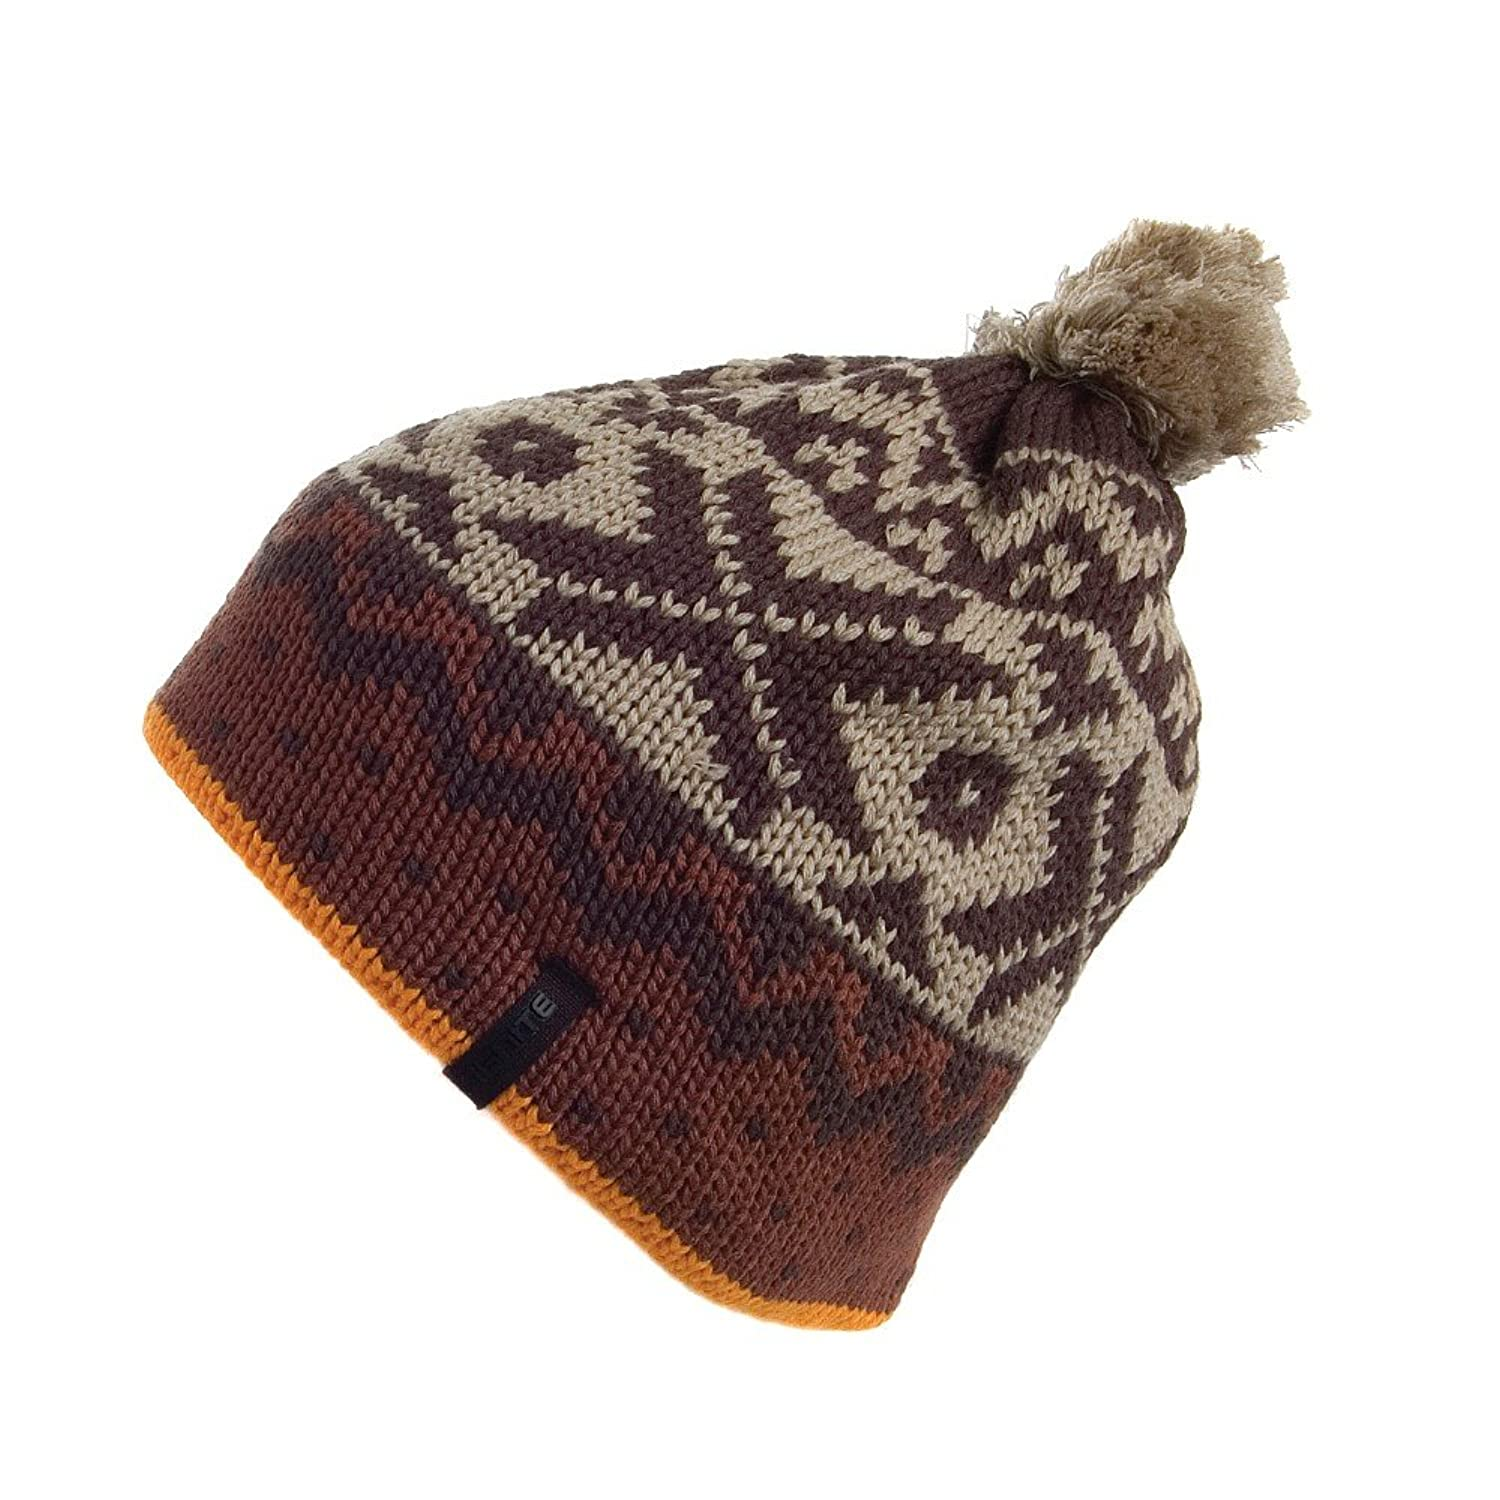 8c0a4985578 Ignite Yukon Bobble Hat - Brown Brown 1-Size  Amazon.co.uk  Clothing